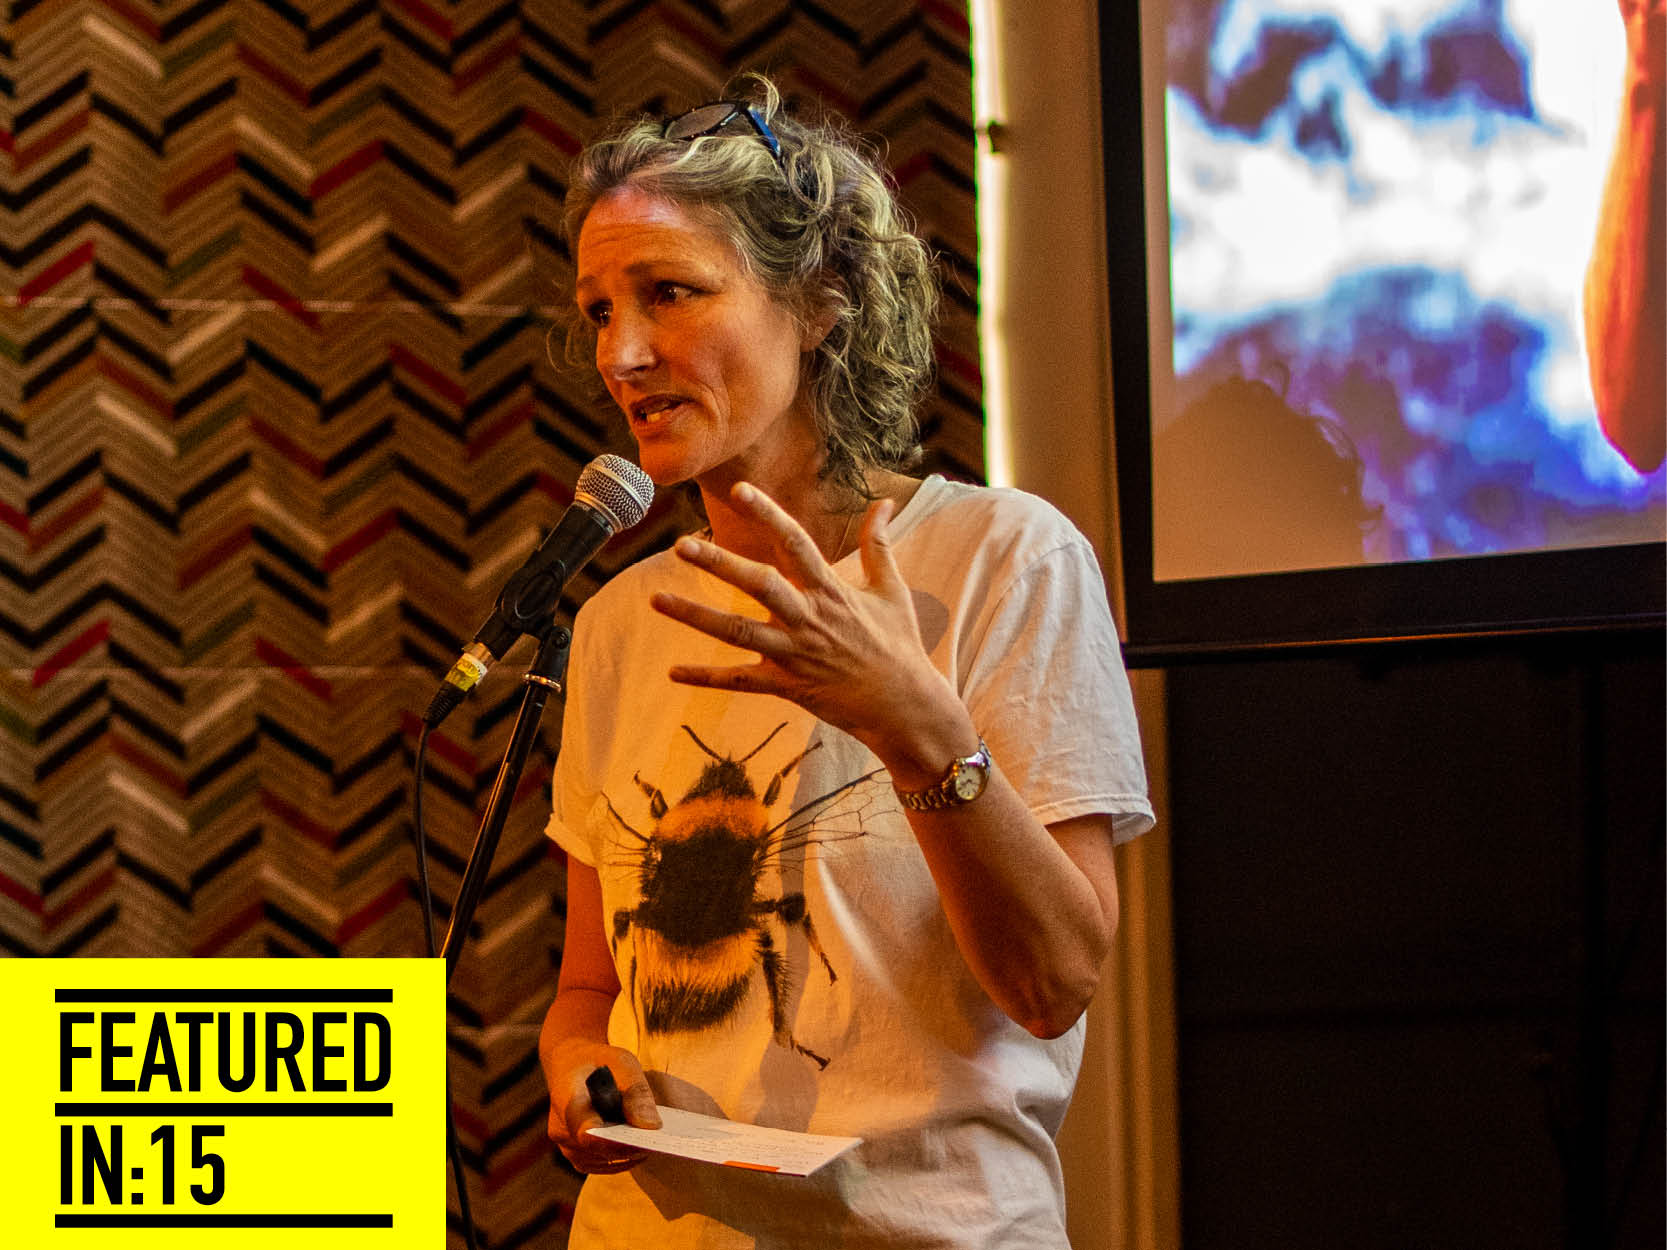 """Our second feature of last weeks FF event - Naomi Leake a speaker from  @extinctionrebellion  Shared with us the harsh realities of what's really going on with our planet. Naomi had a lot of information to impart in her fifteen minutes and some of it was frankly terrifying. If we don't get a grip as a species within eleven years we will basically not be able to stop the inevitable end of our civilisation. Thats some message to have to deliver but she did it without any of us running for the door! Naomi's message is one that cant be ignored and although her statistics about animal extrinction made you feel helpless, extinction rebellion are clear that things can change. In the light of the facts on offer their three demands seem more than reasonable: 1. Declare climate emergency 2. Make Zero Carbon by 2025 happen 3. Create a Citizens assembly. Naomis presentation has left me wanitng to find out more."""" We couldn't agree more and from what we could see, there wasn't anyone in the room that didn't feel totally saddened by the damage that can't be undone. That is a man made product. We have created a bomb of mass distruction. And all the time this has been ticking off in the background we've been blinkered by other 'threats' to society - We all have a role to putting something back don't we? We still have time… not much but let's make this time count and all think a bit more before we put that damage in. Thank you so much Naomi for reconnecting us with our one most precious shared belonging: our planet."""